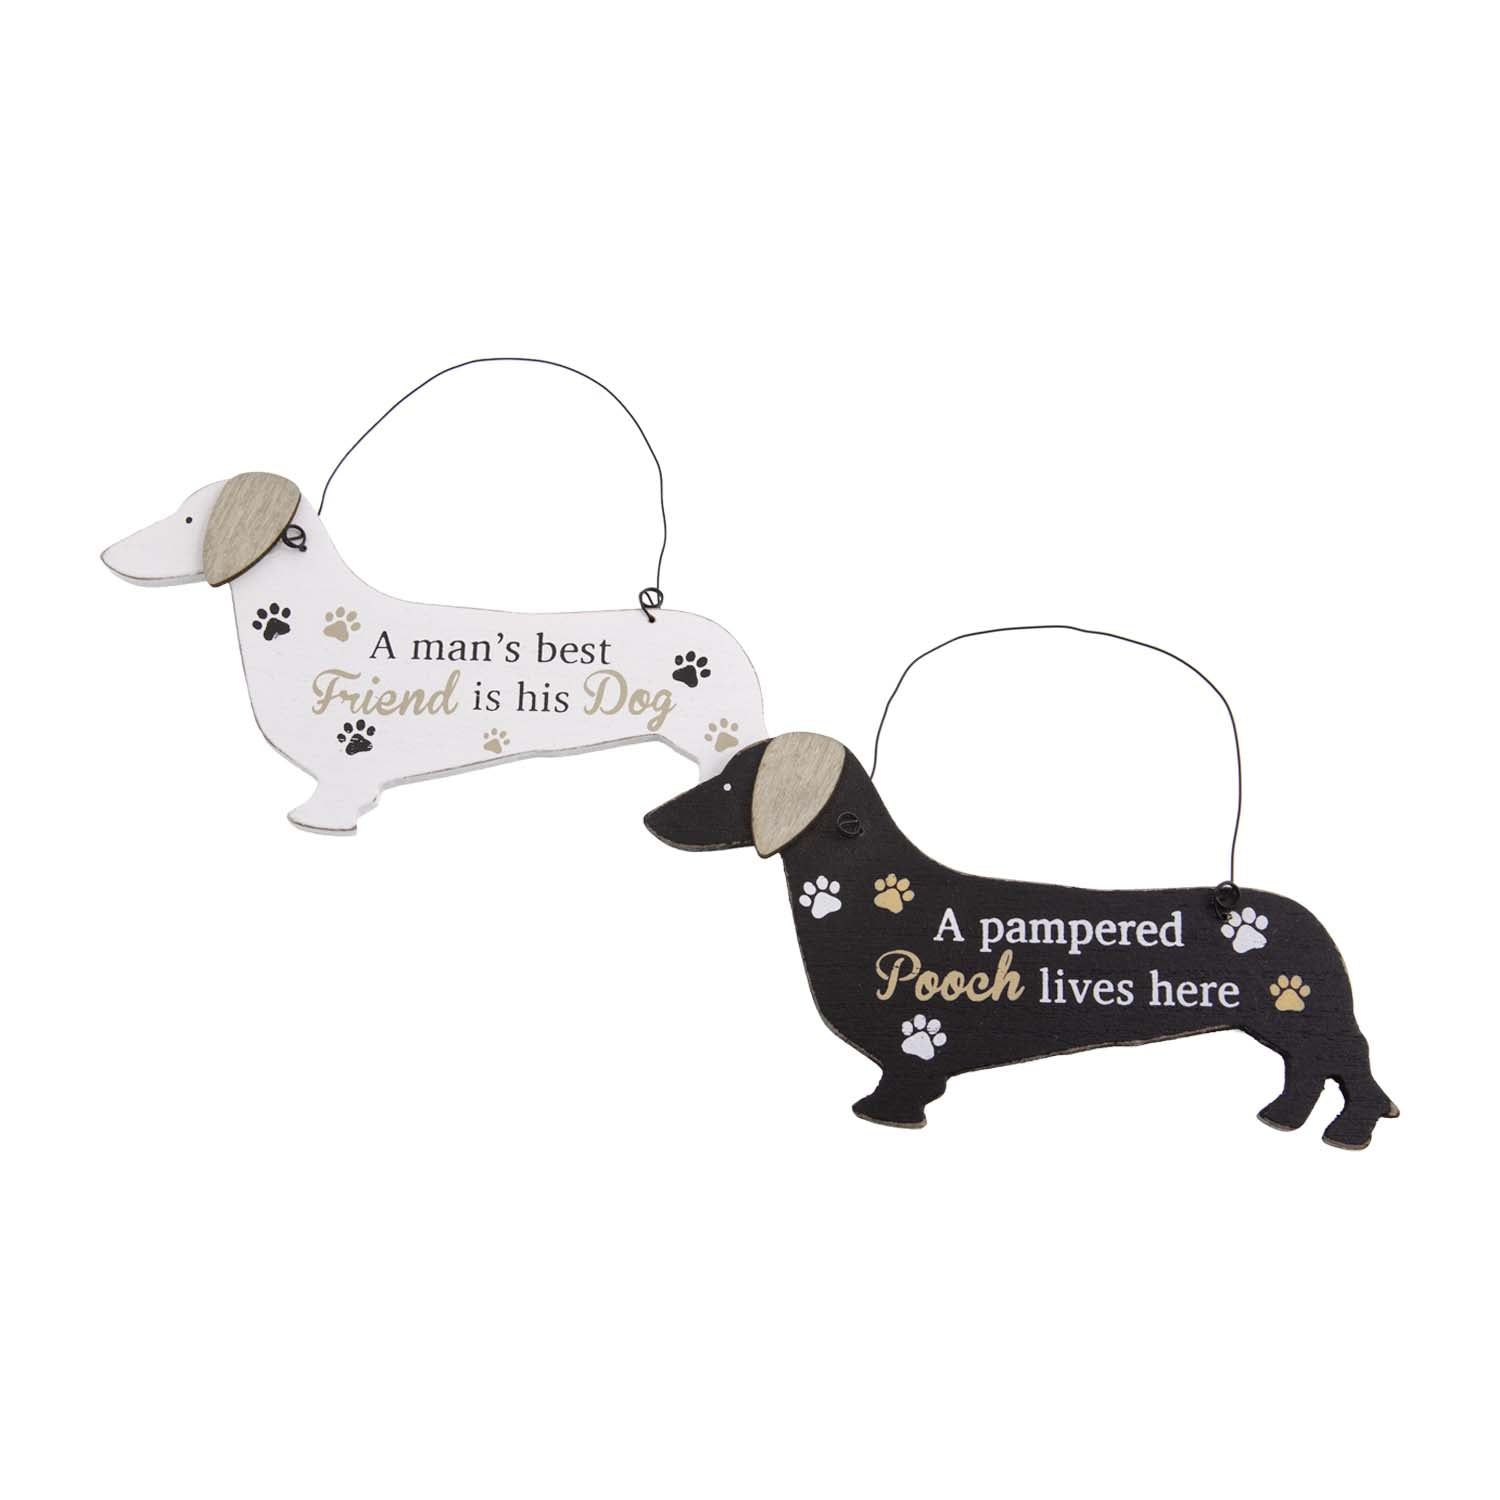 Dog Lover Gifts – Black Dachshund Hanging Sign - Pampered Pooch, Just Part Of Our Collection Of Signs Available At www.dogkrazygifts.co.uk